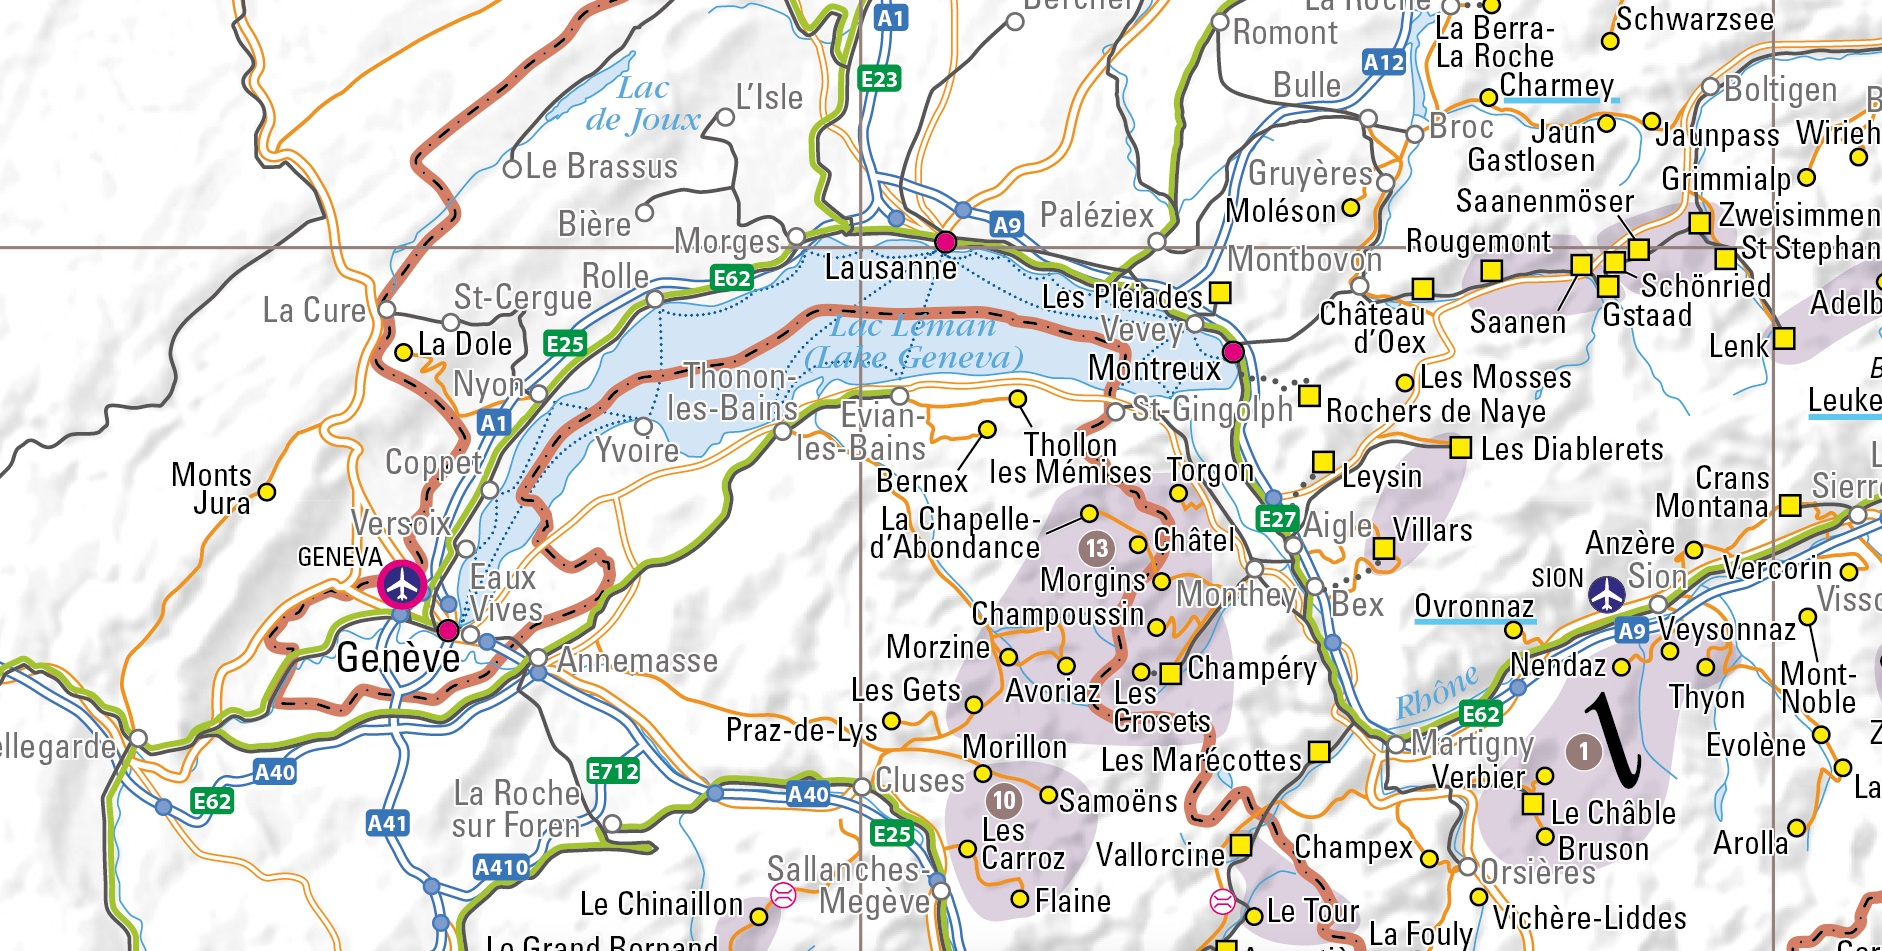 Sample of mapping